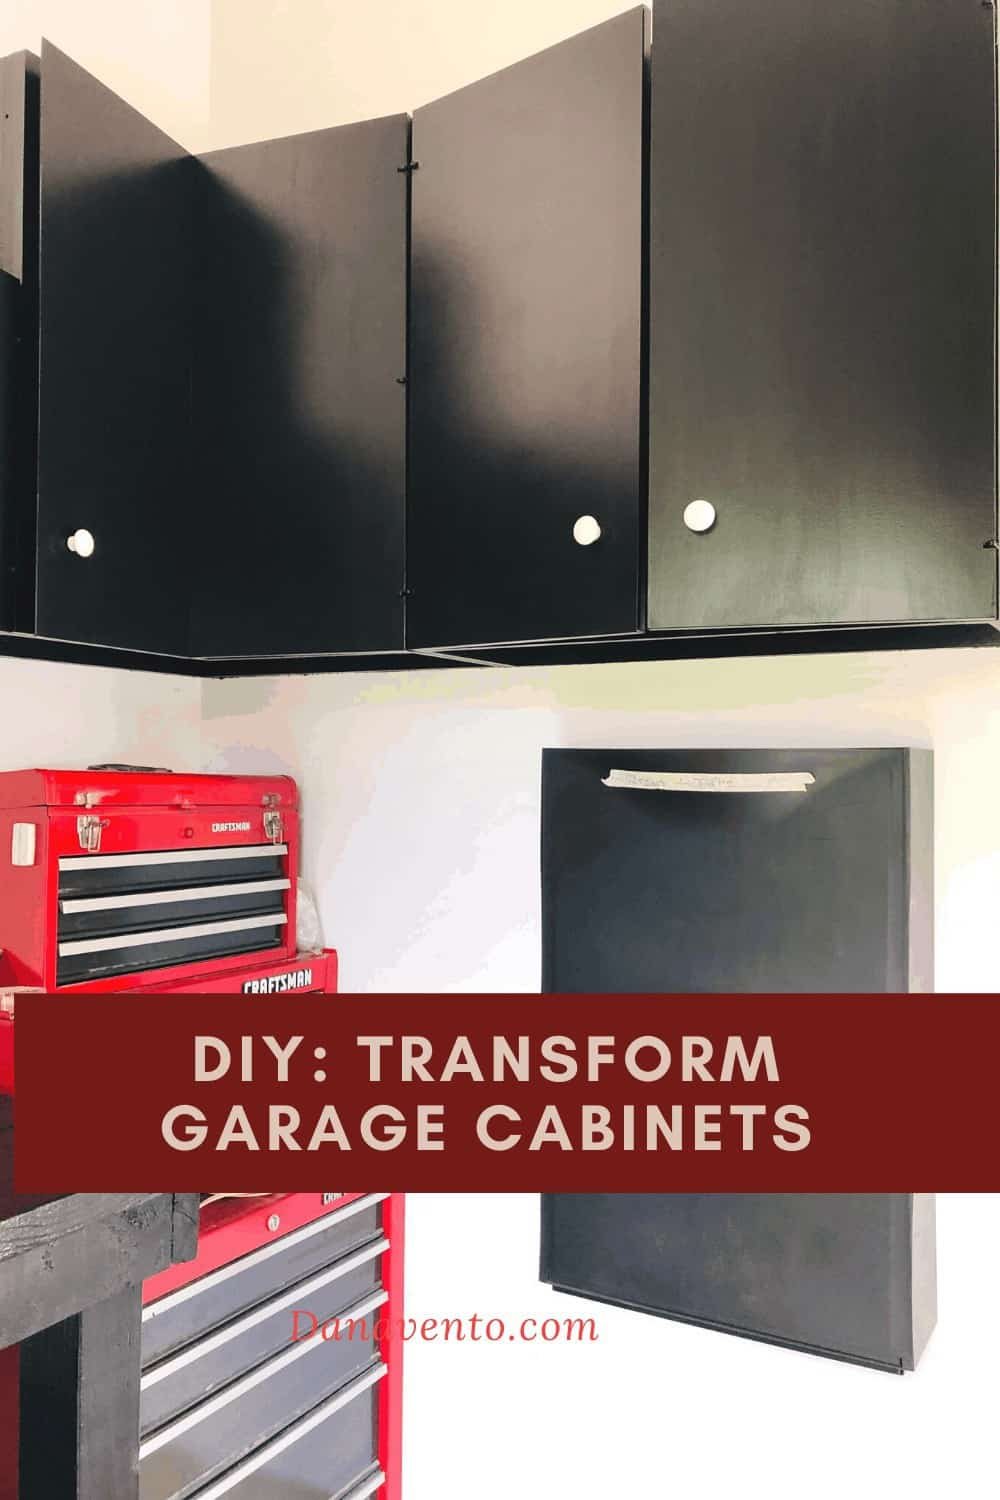 Black Deco NUVO Paint on Garage Cabinets DIY - Paint cabinets. DIY